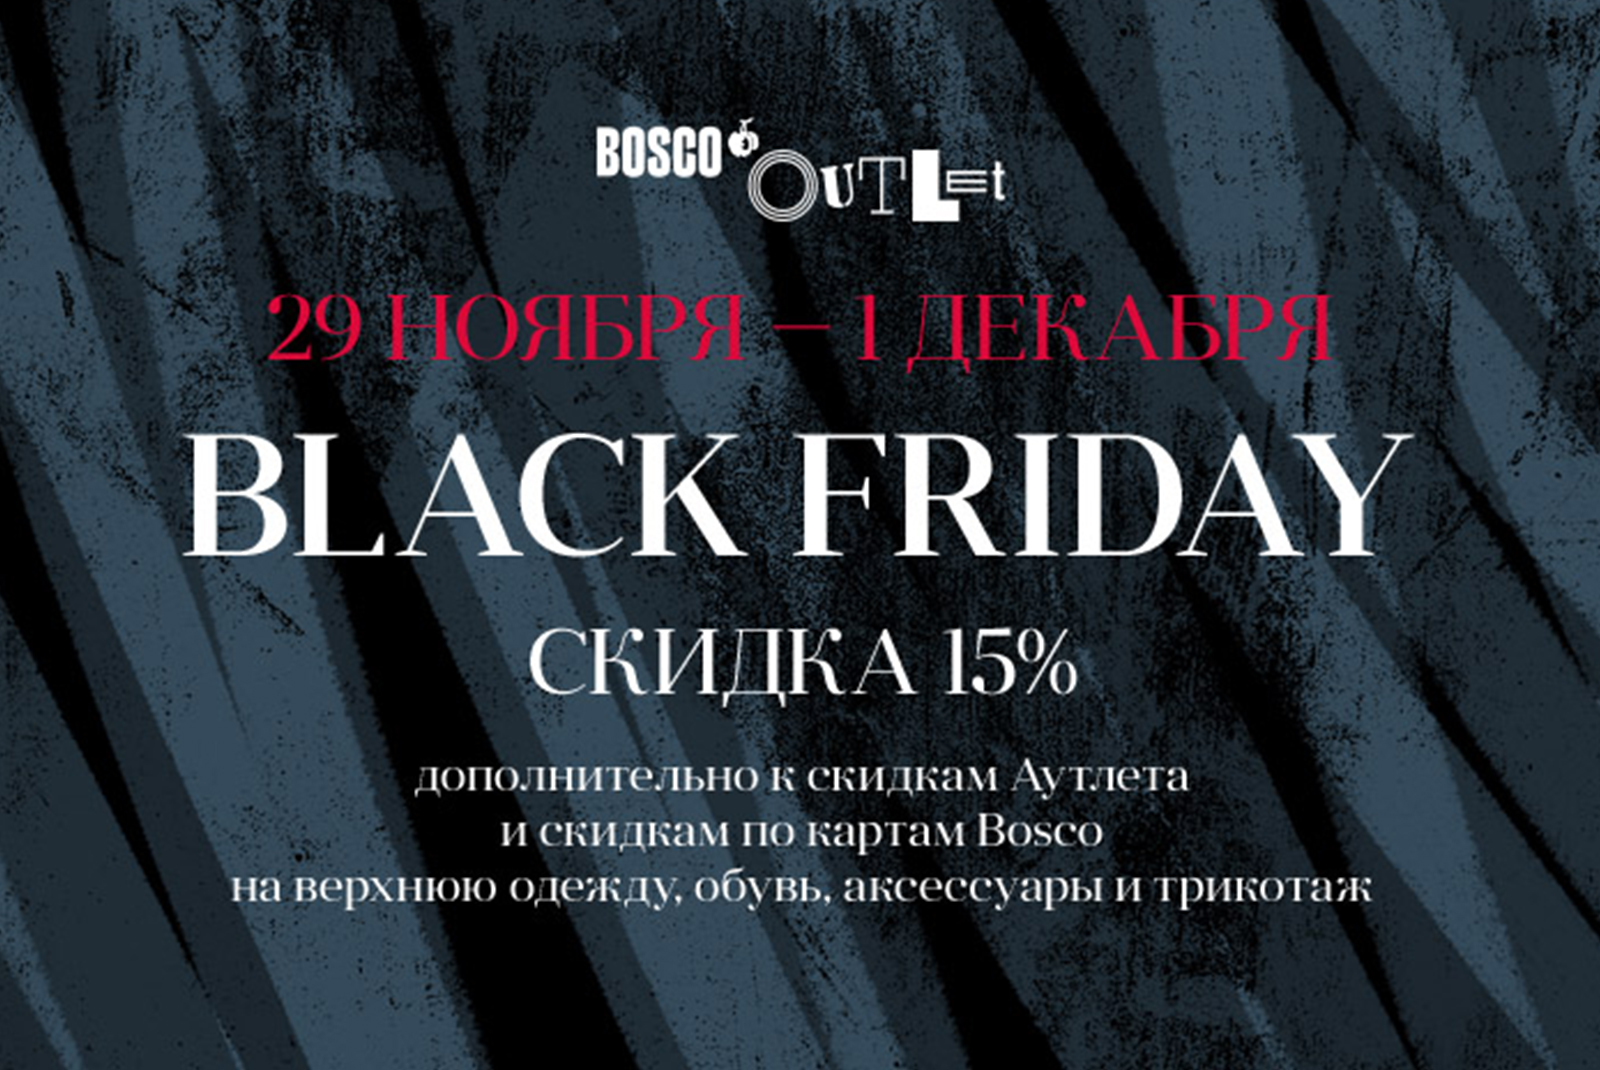 Black Friday в Bosco Outlet!